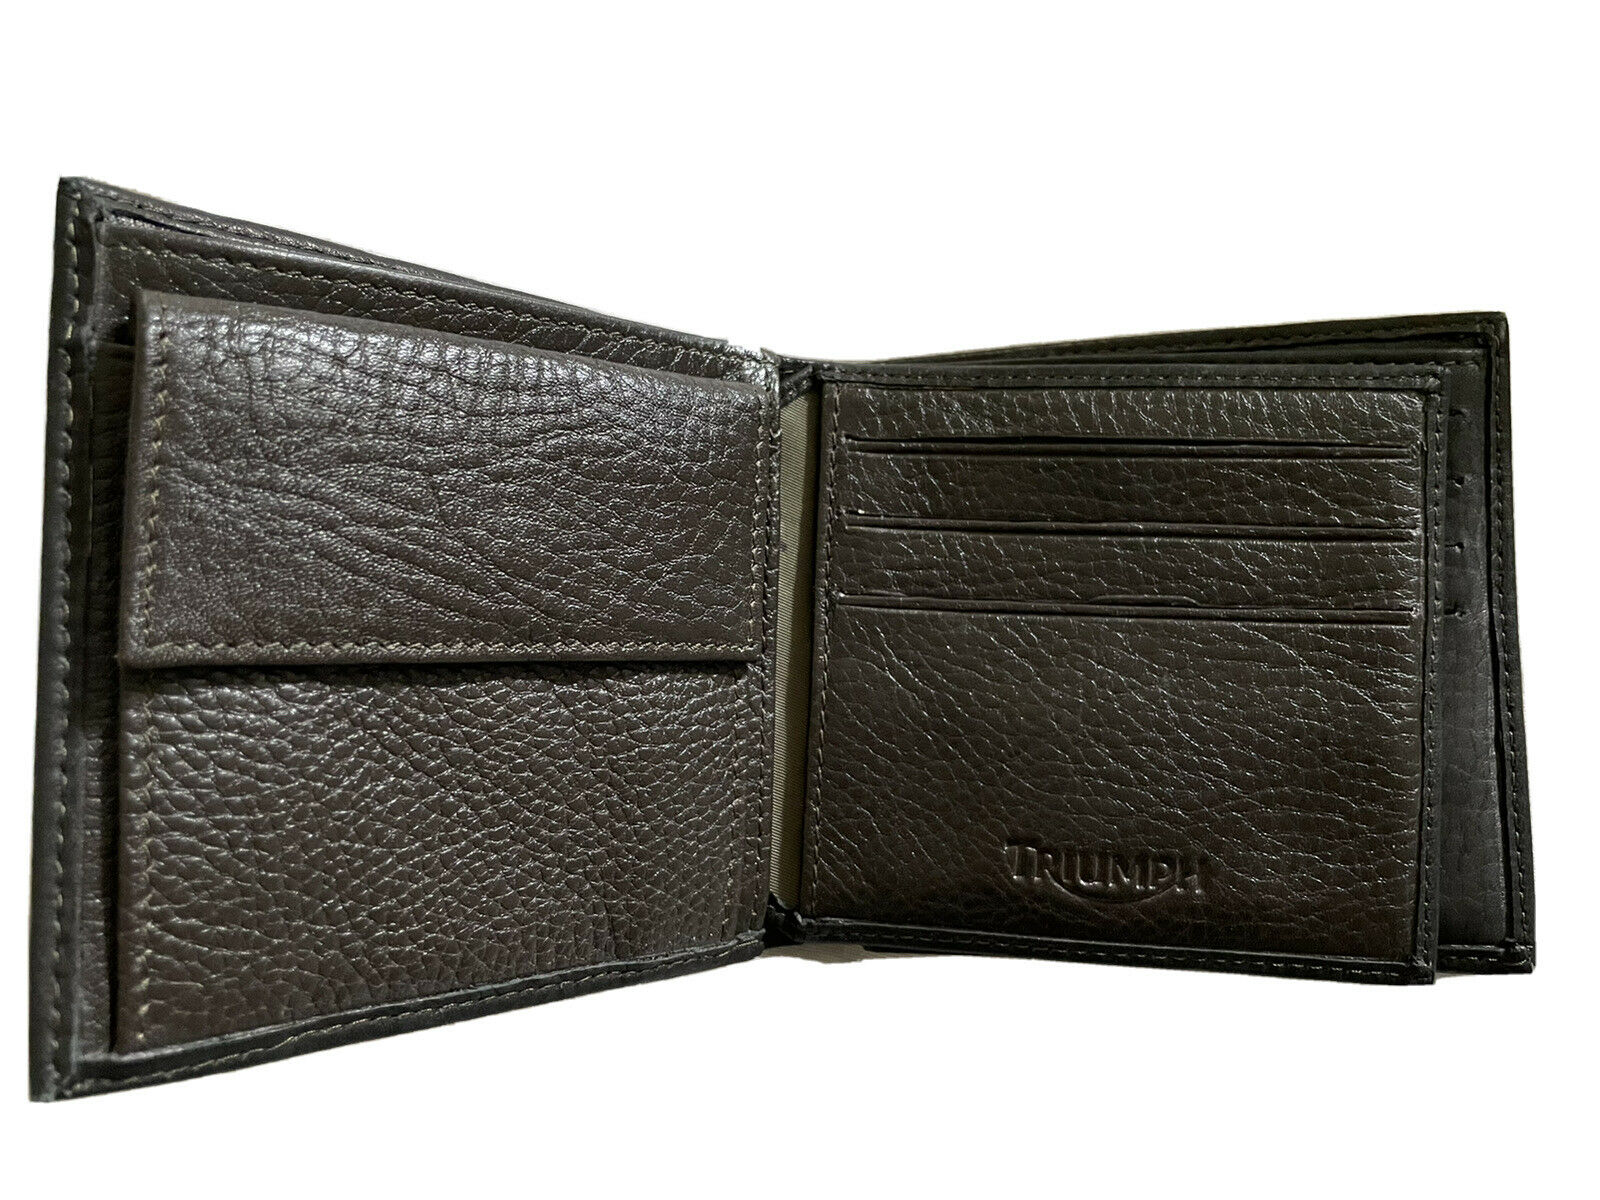 Genuine Triumph Motorcycle Leather Wallet Black-NWT